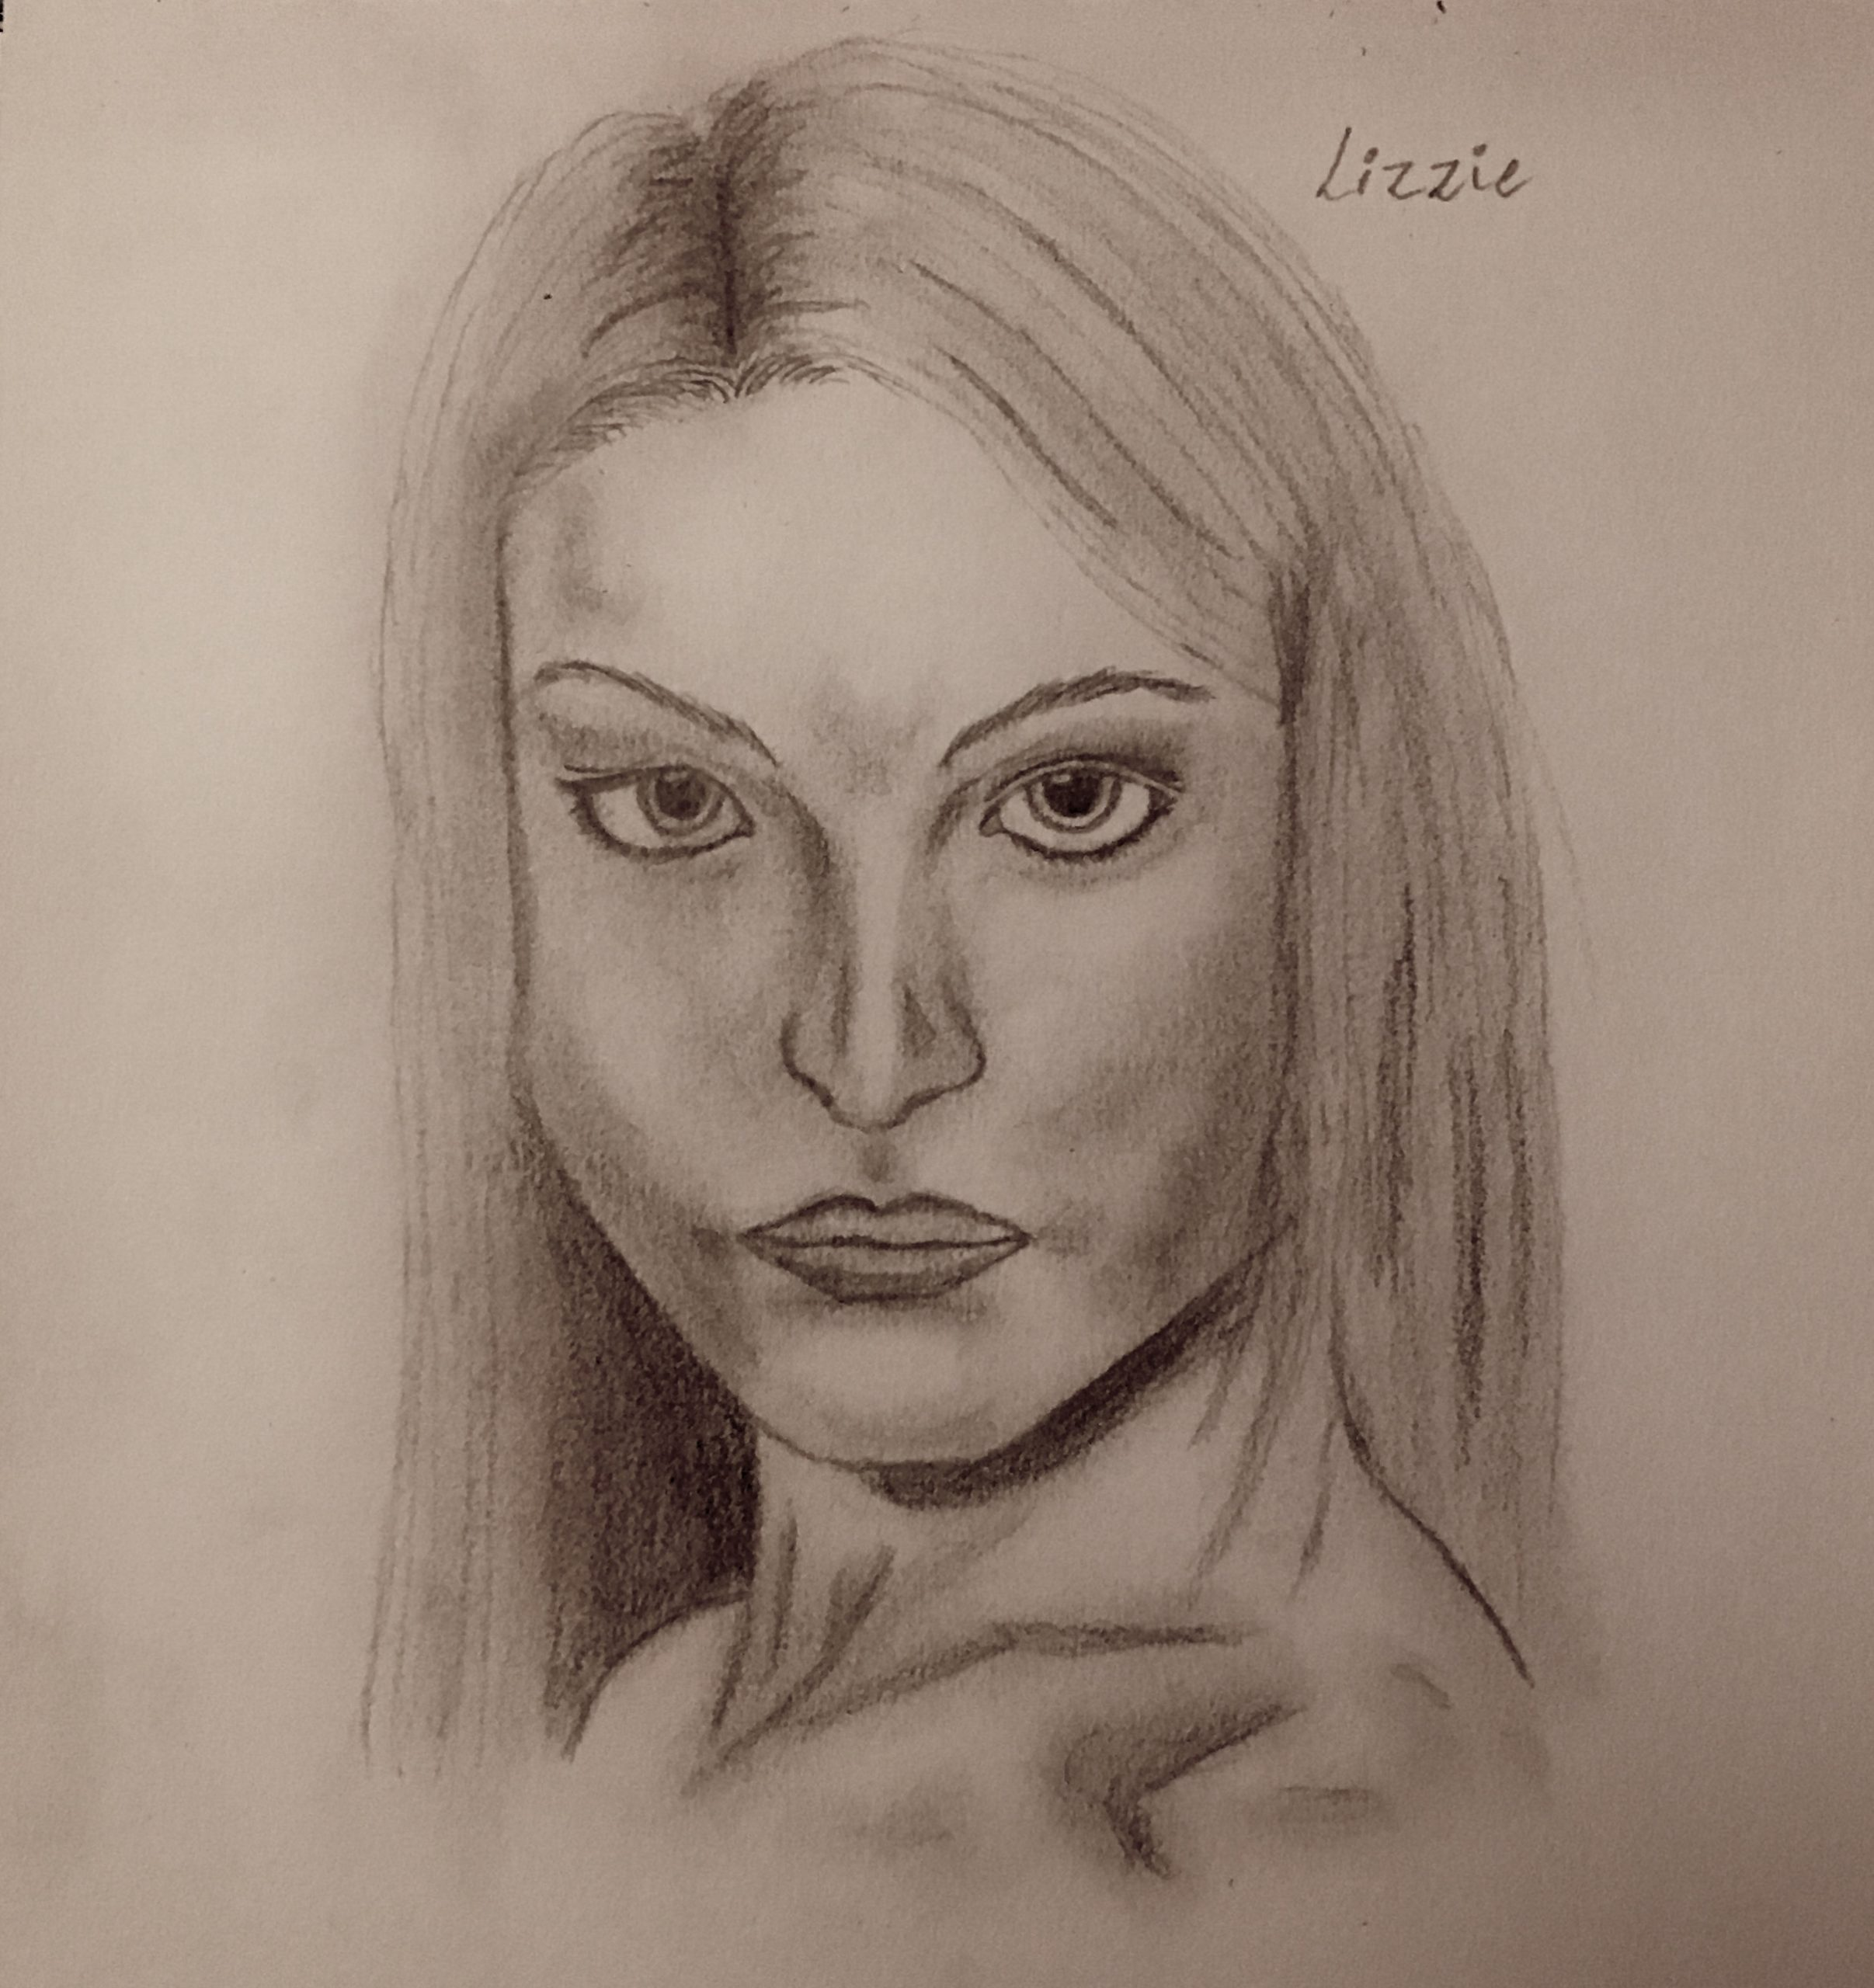 Sketch drawn of character, Lizzie. With a direct stare and long blonde hair, Lizzie looks determined.